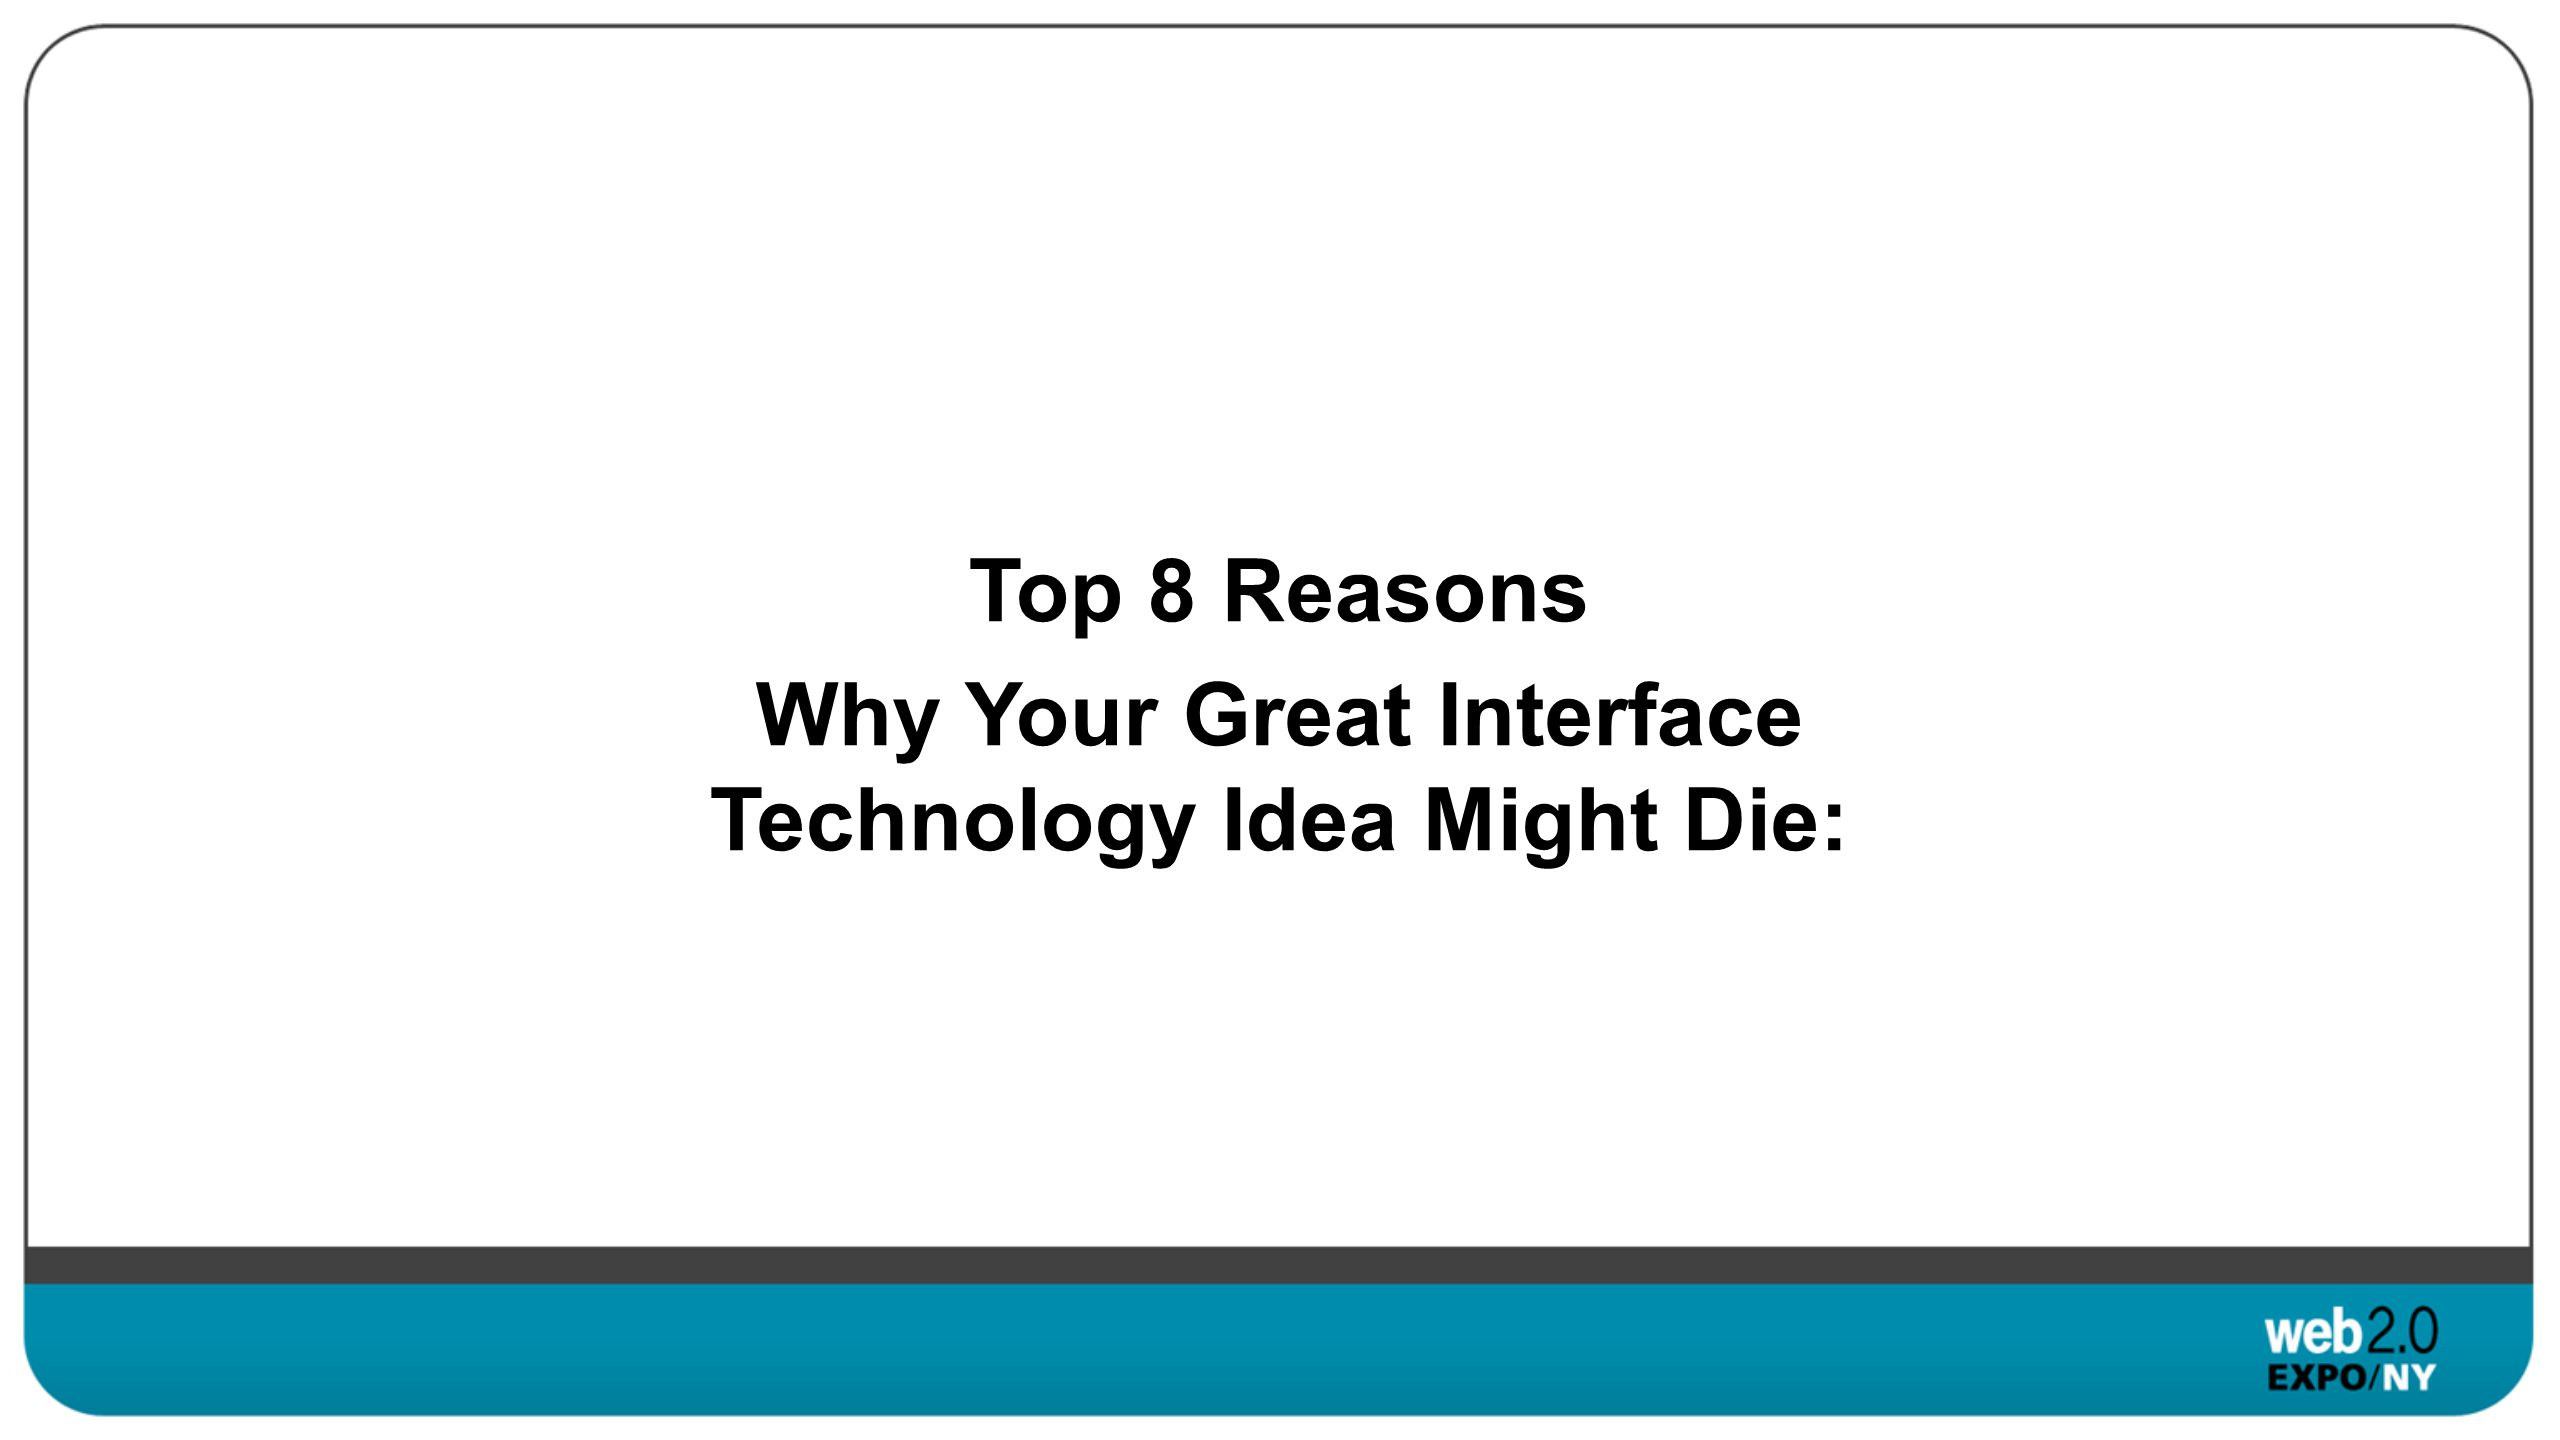 Why Your Great Interface Technology Idea Might Die: